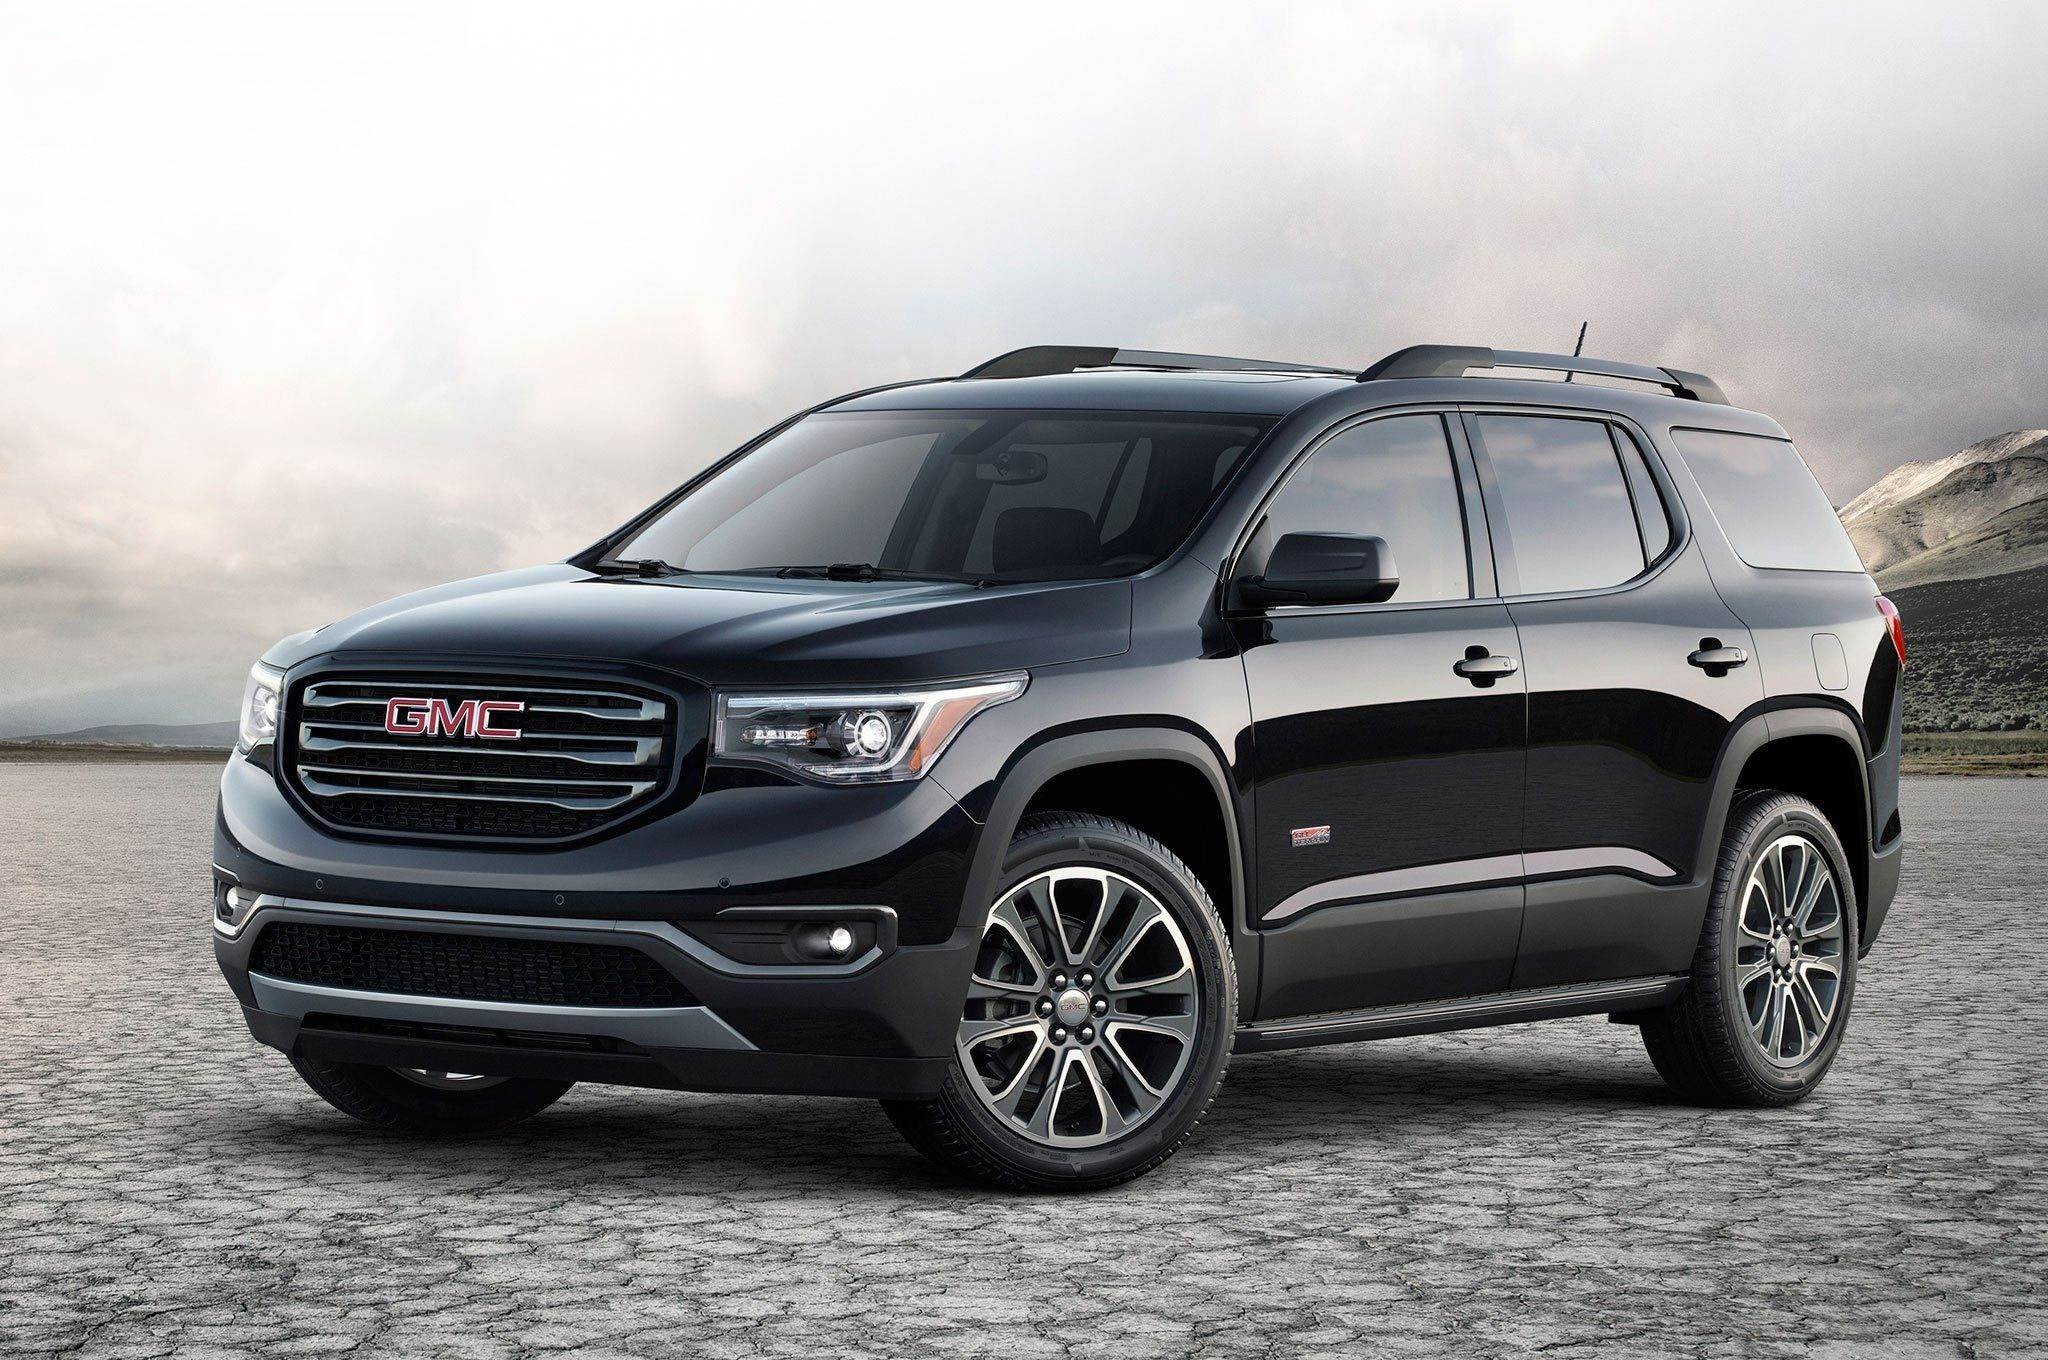 2020 Gmc Envoy Car Specs 2019 Picture Release Date And Review Gmc Envoy Suv Cars New Suv